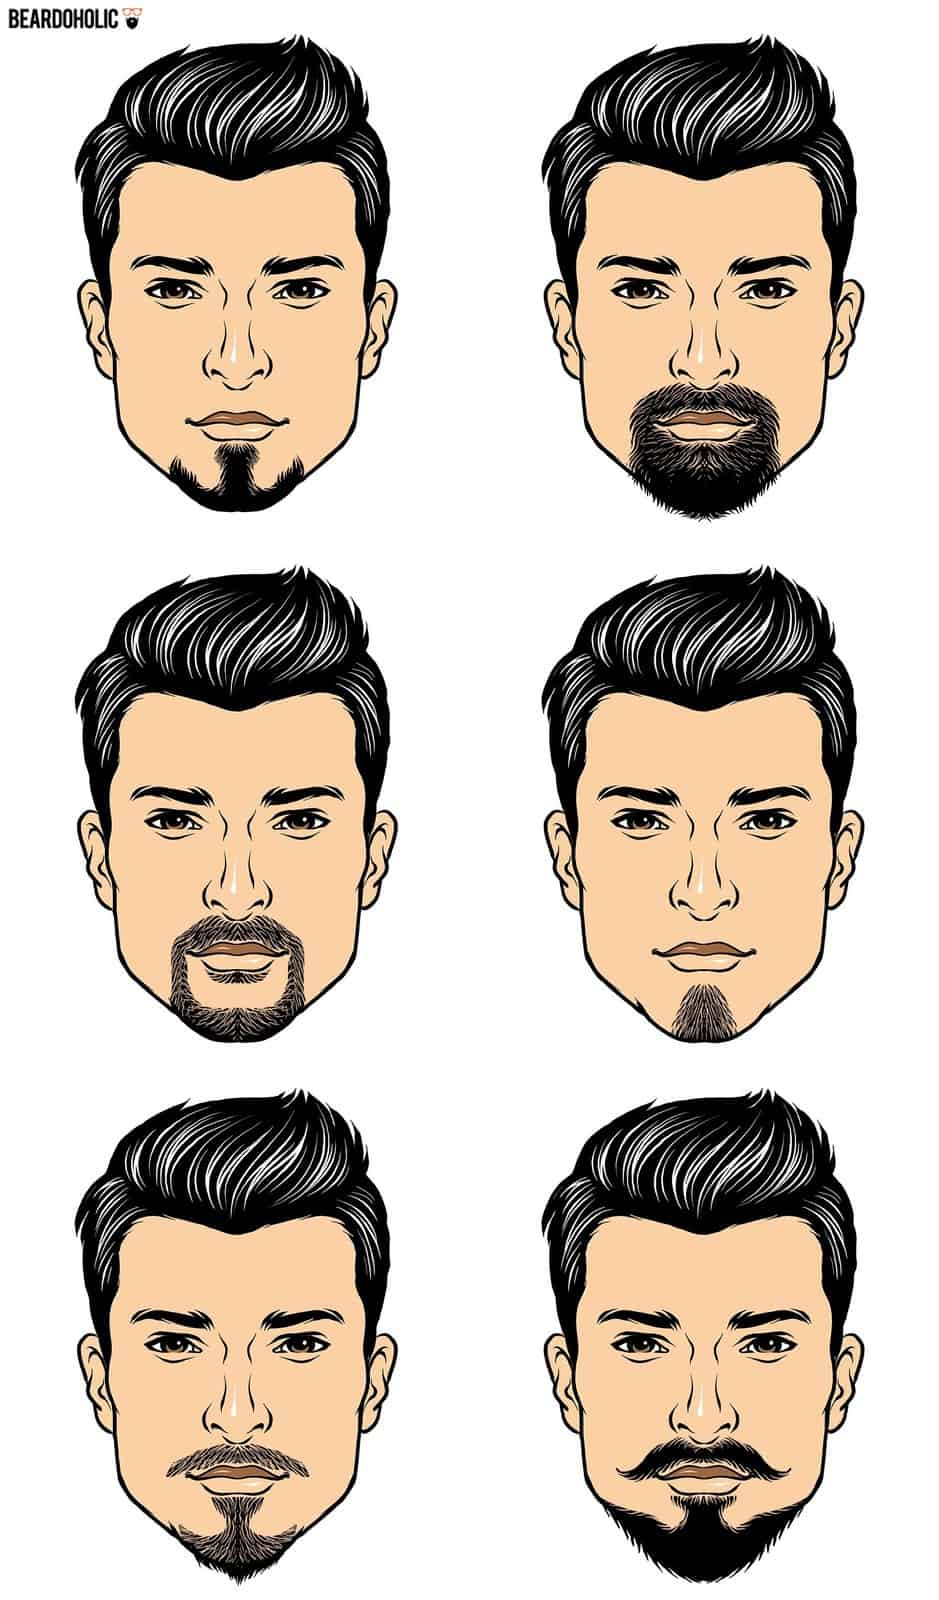 Marvelous 6 Most Famous Goatee Styles And How To Achieve Them Beardoholic Schematic Wiring Diagrams Amerangerunnerswayorg